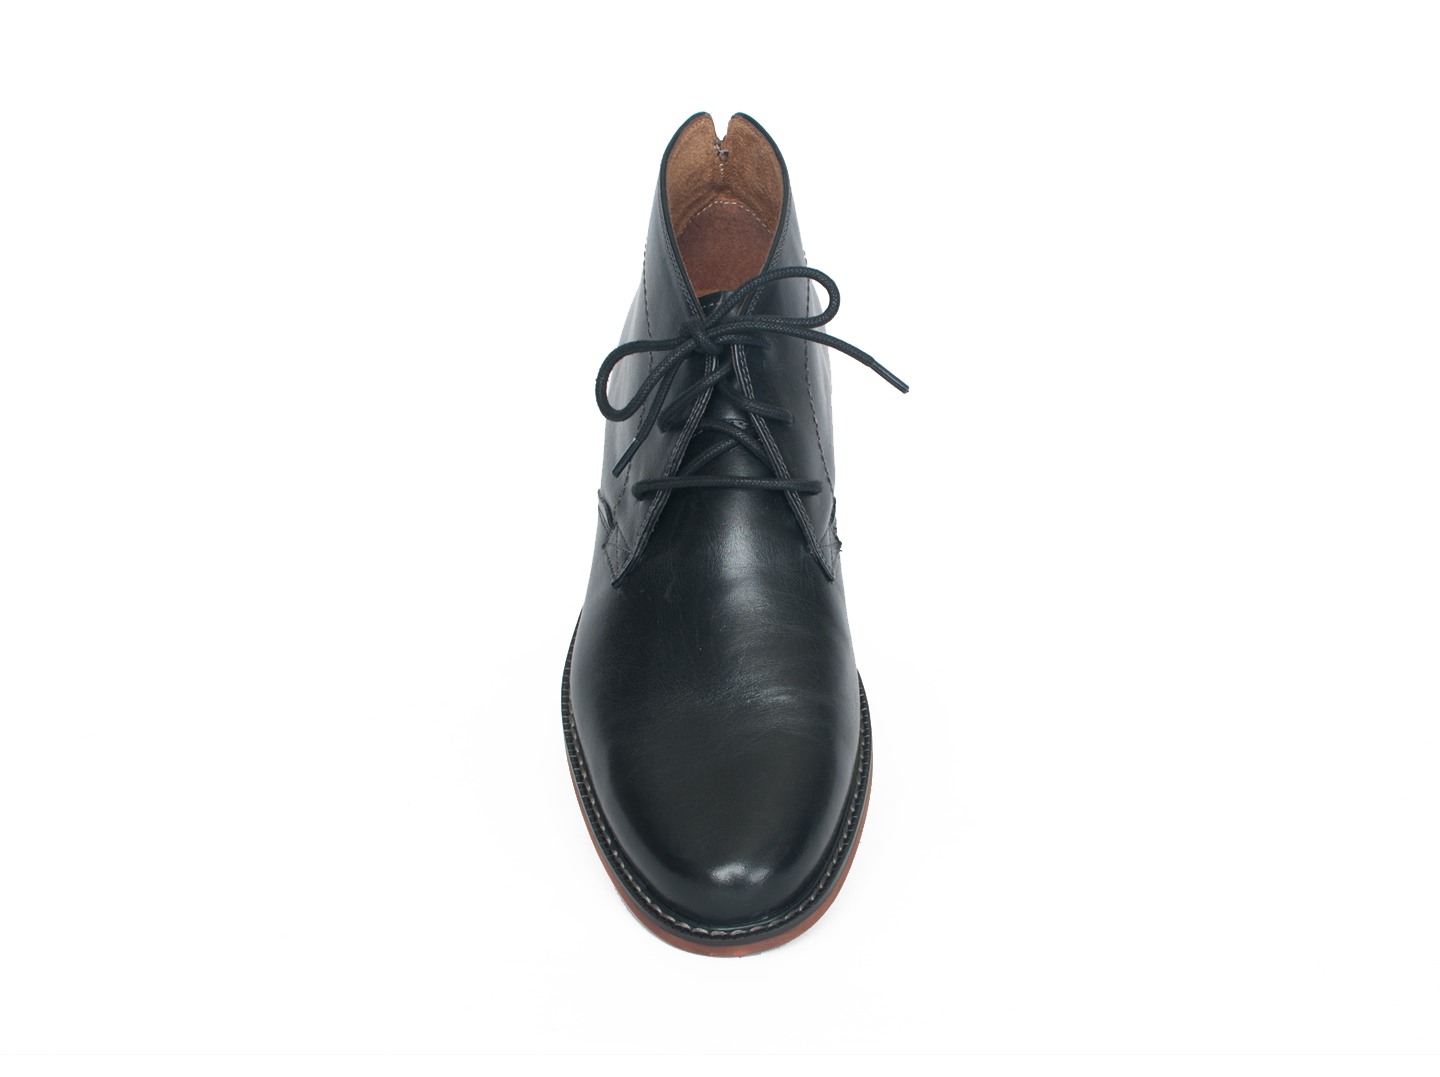 doon men Florsheim doon chukka boot pvoi1t9q-7996943 - men boots - sku: #7996943a true gentleman can appreciate the refined style of the doon chukkasuede or leather upper with traditional lace-up.